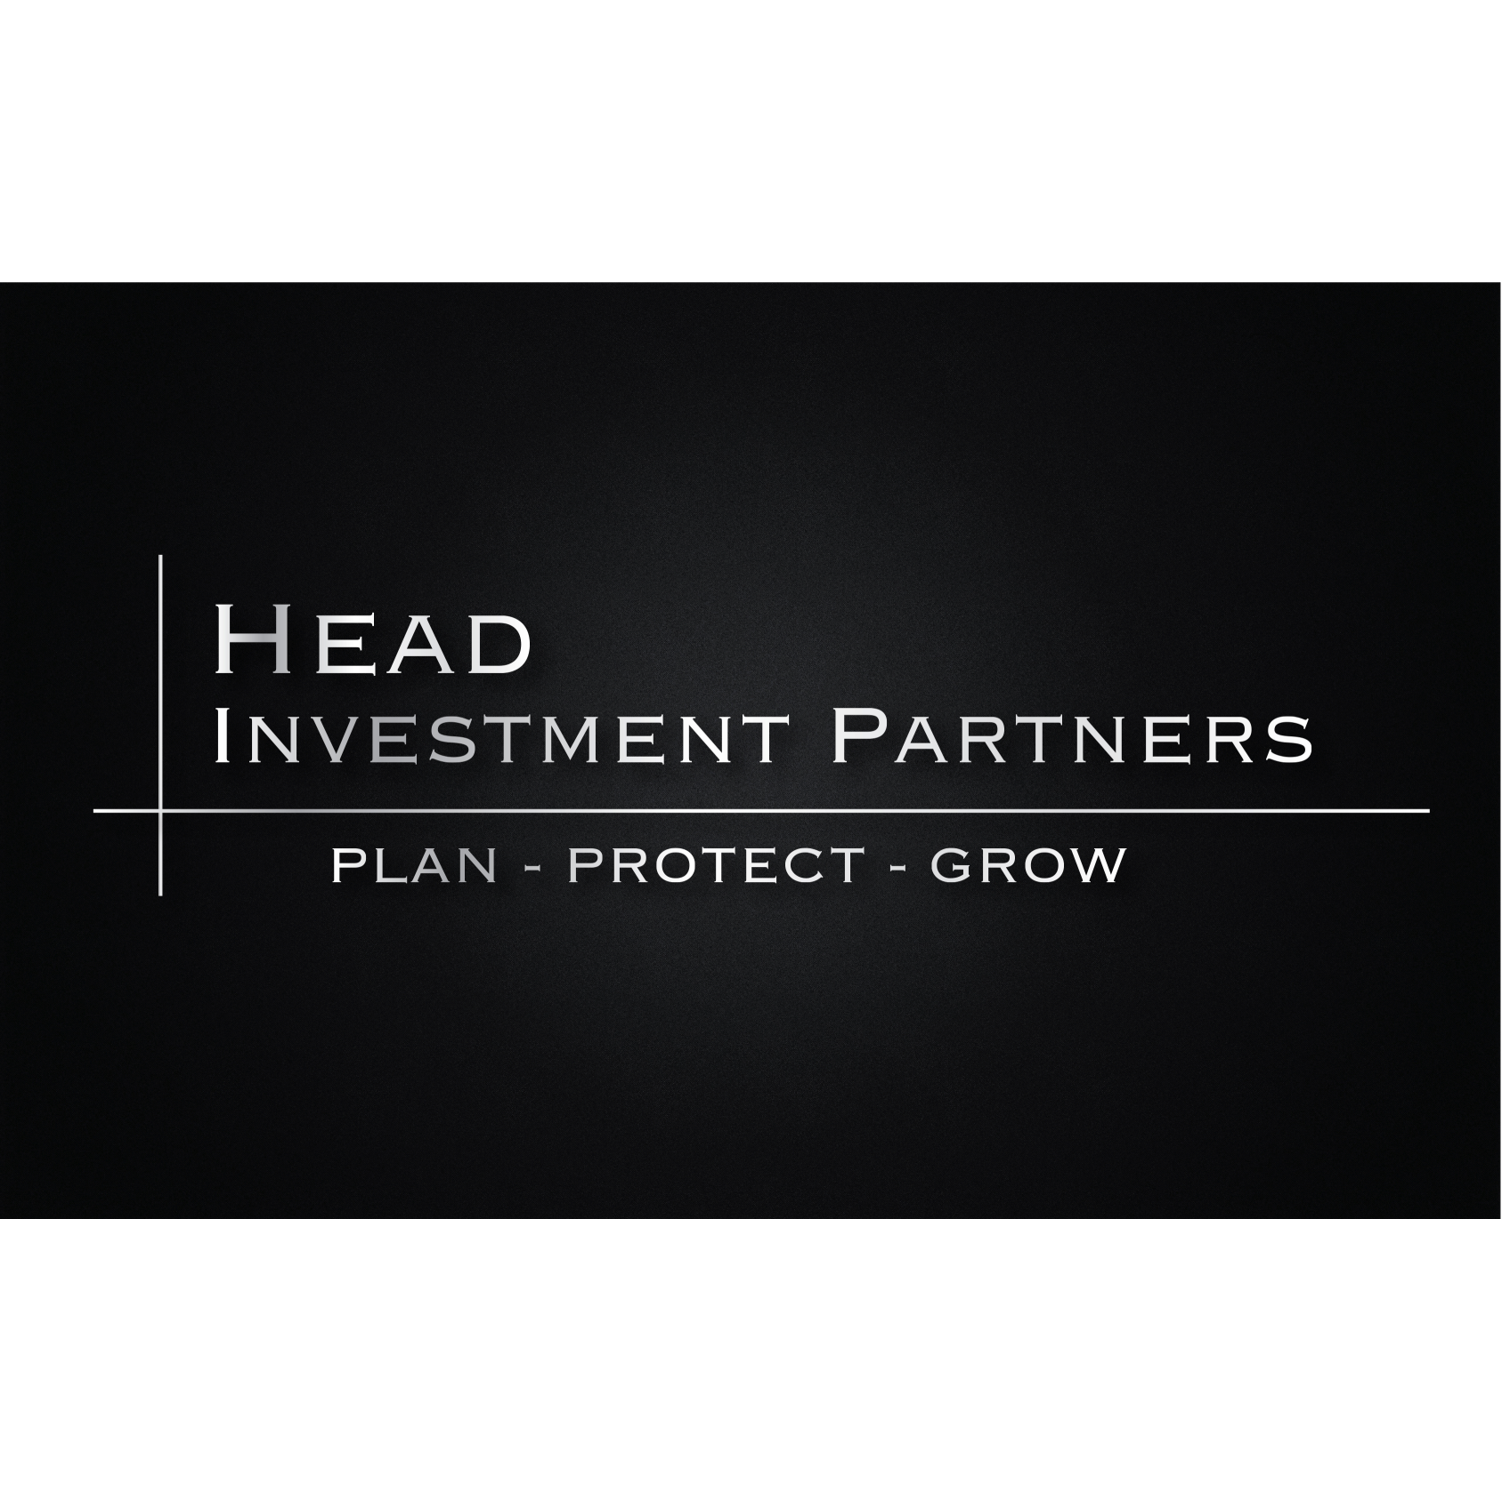 Head Investment Partners